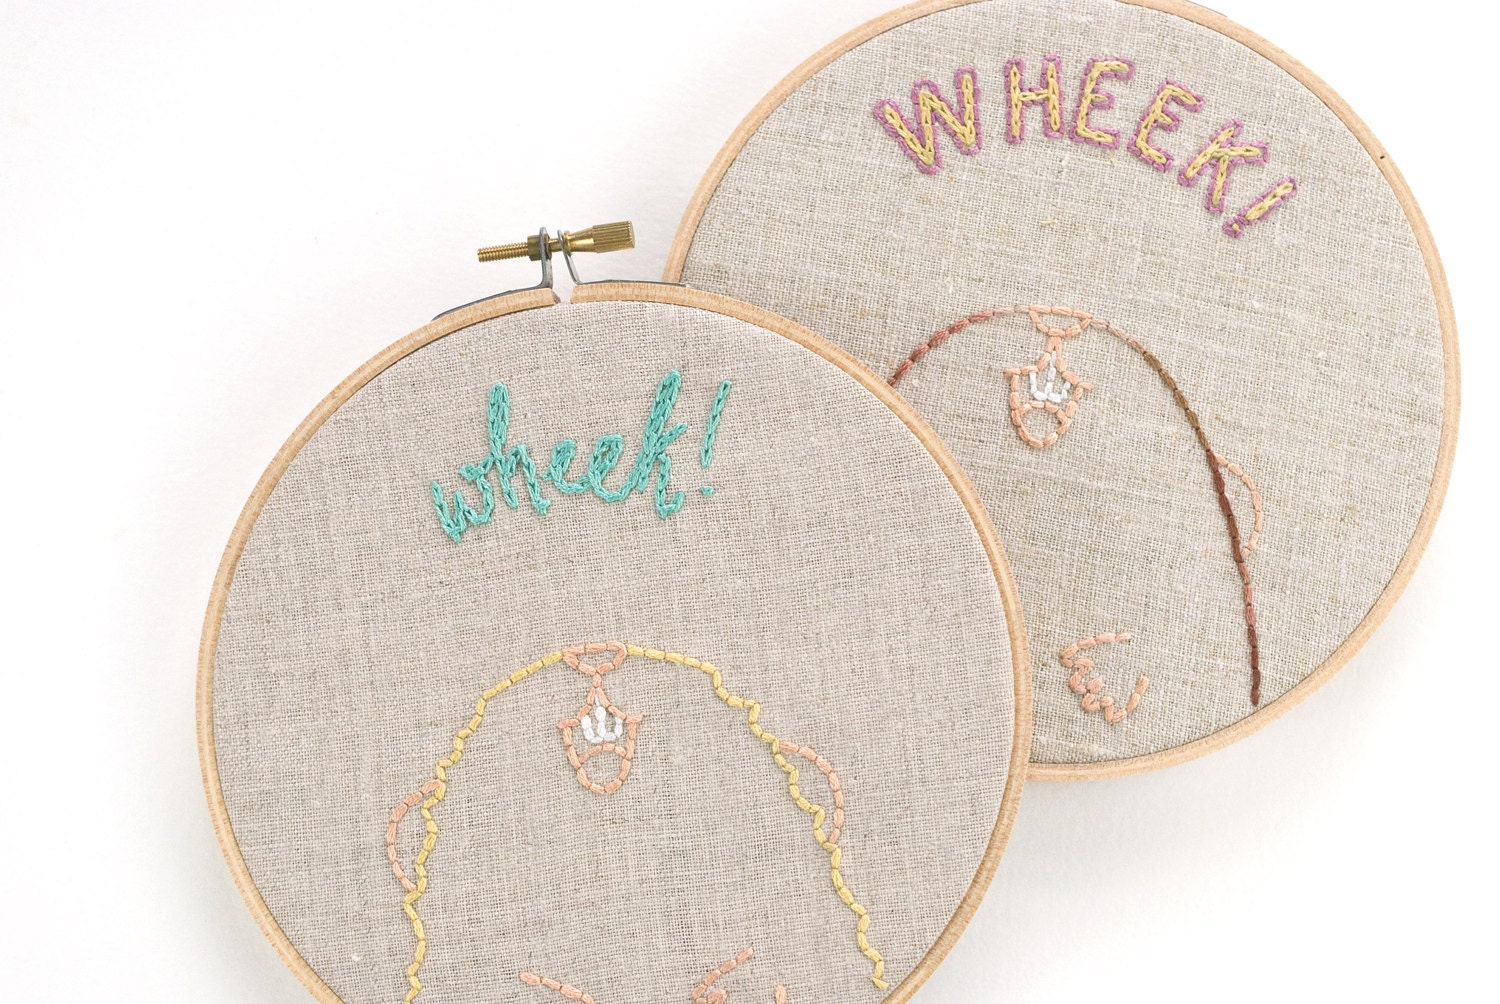 Wheek guinea pig or cavy mini hand embroidery pattern